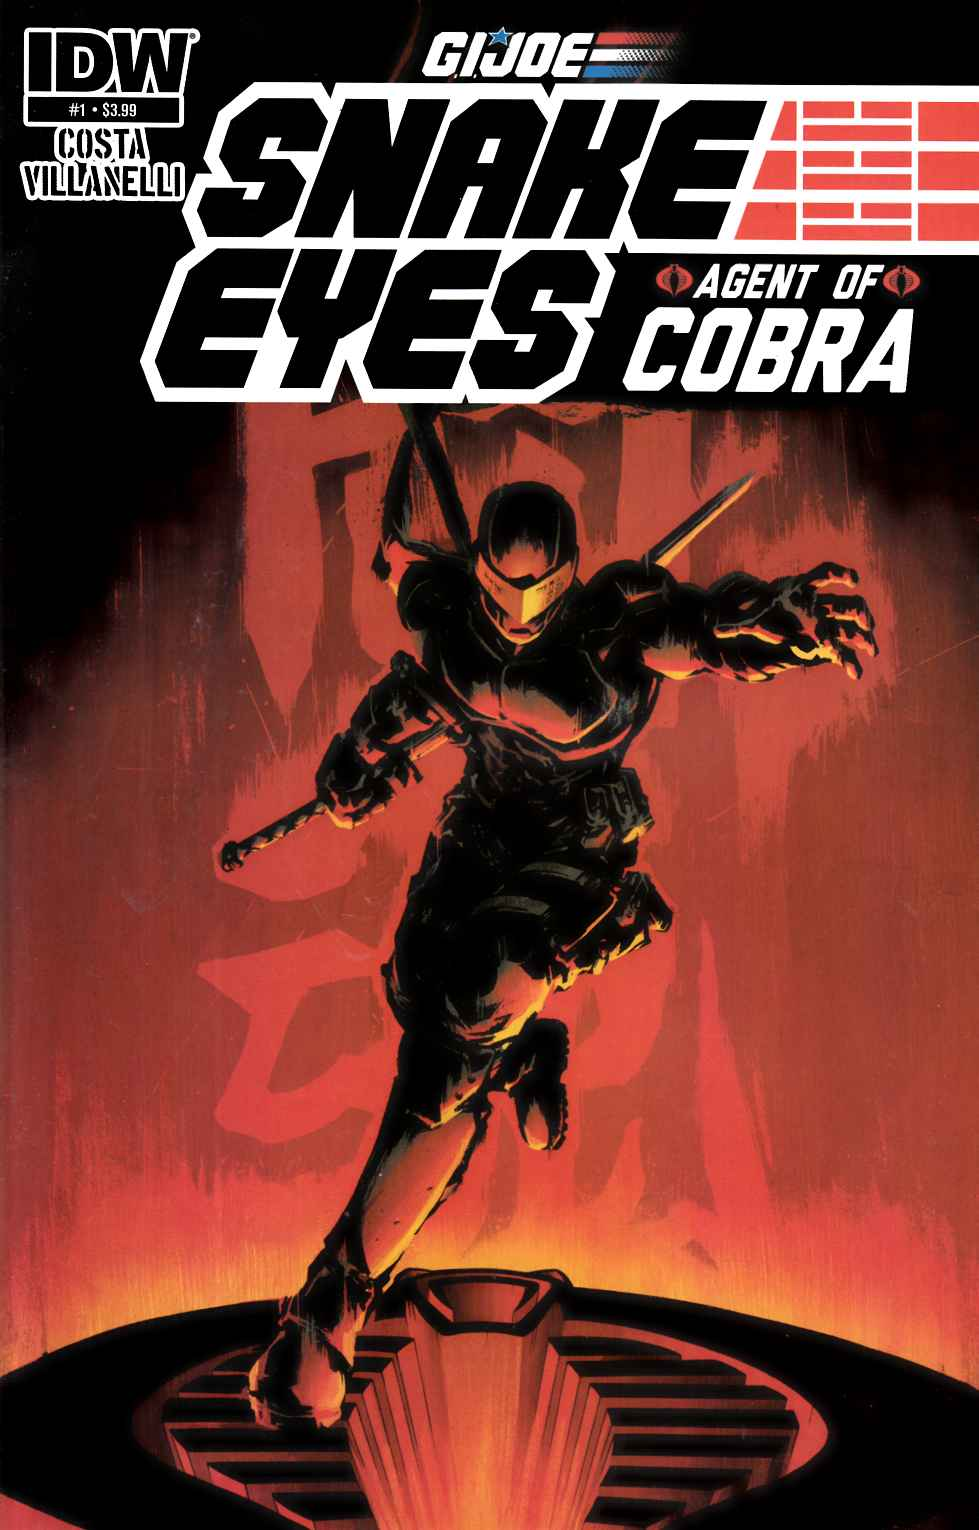 GI Joe Snake Eyes Agent of Cobra #1 [IDW Comic] LARGE